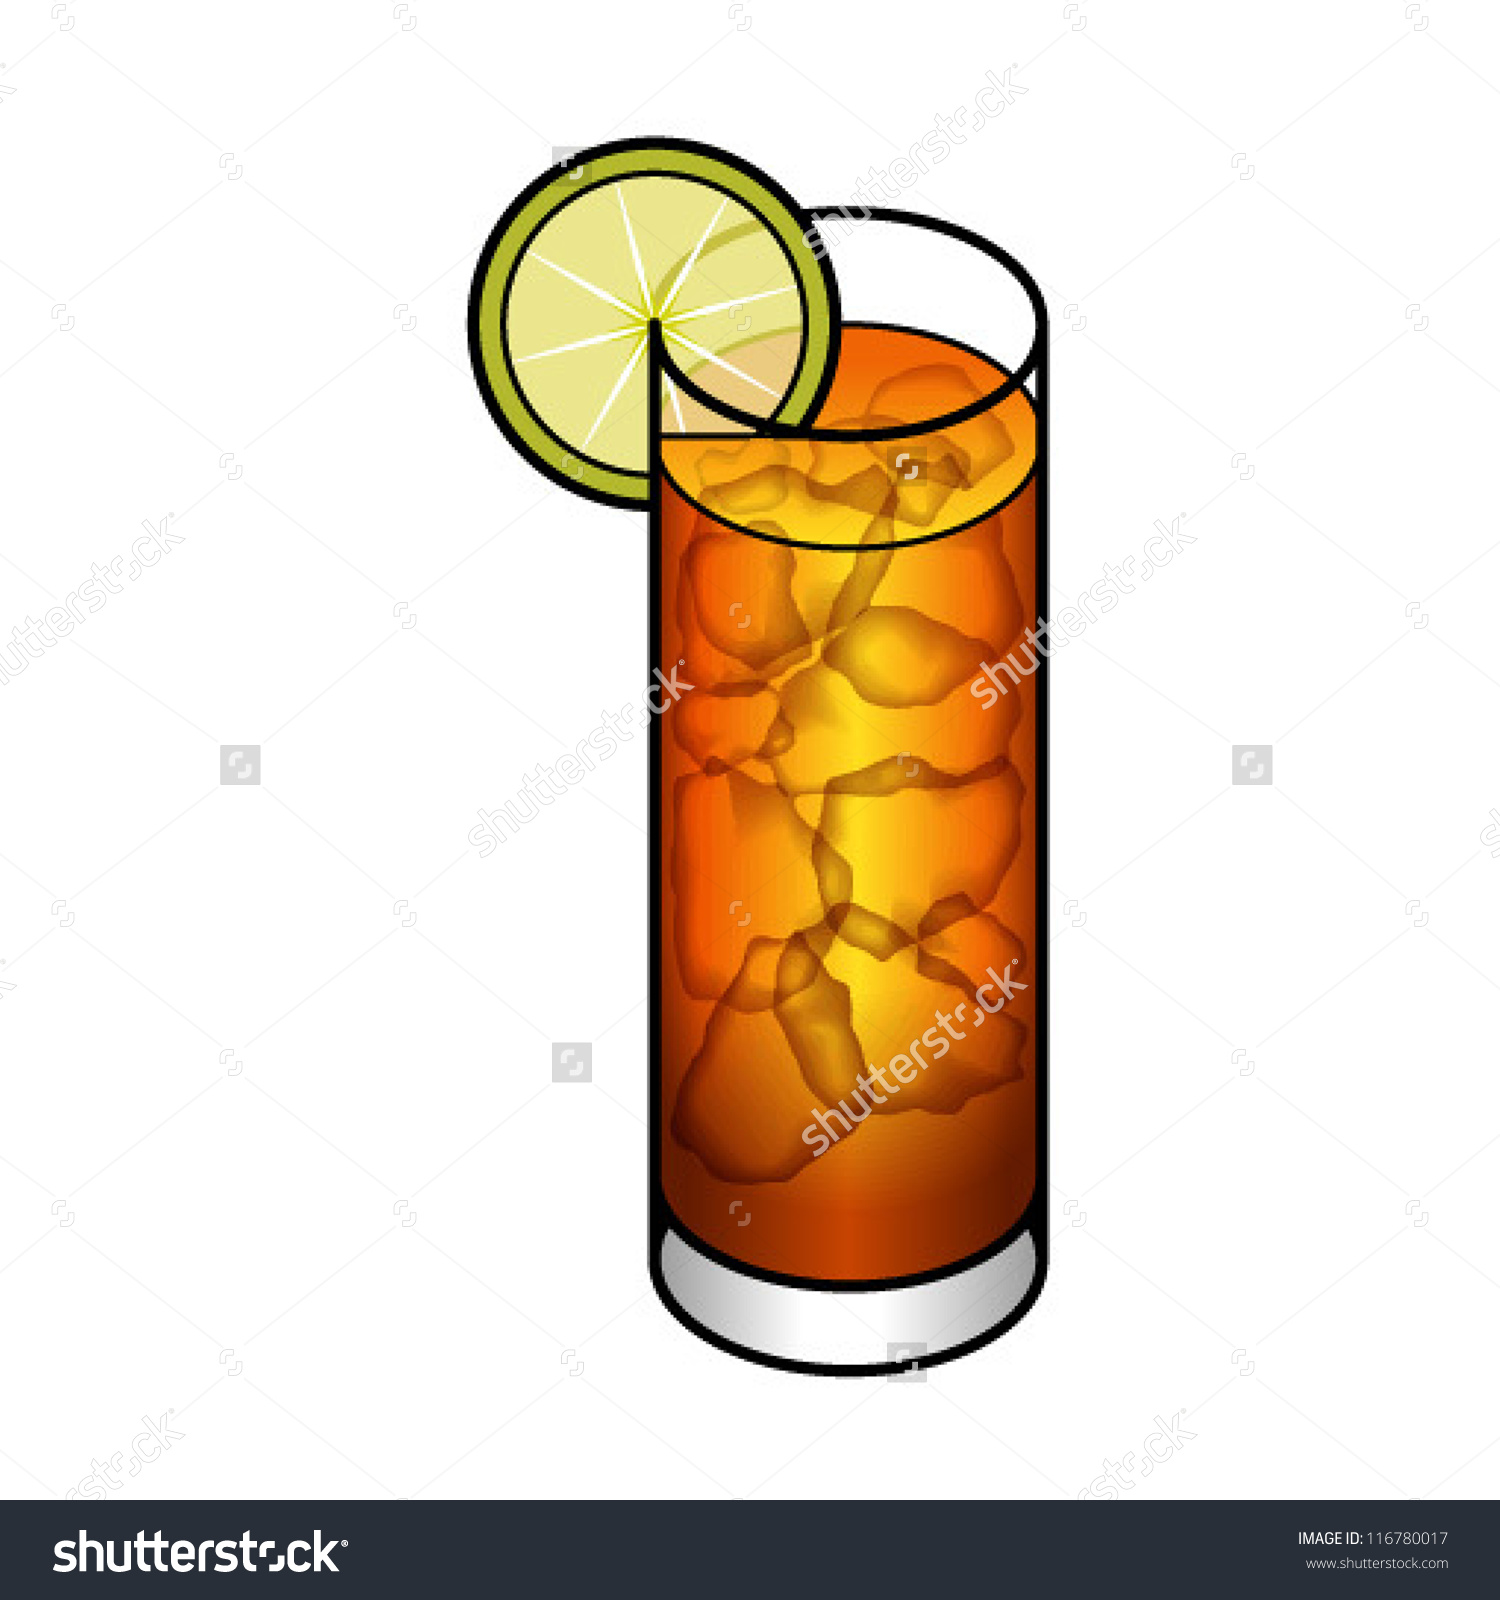 Long island iced tea clipart.